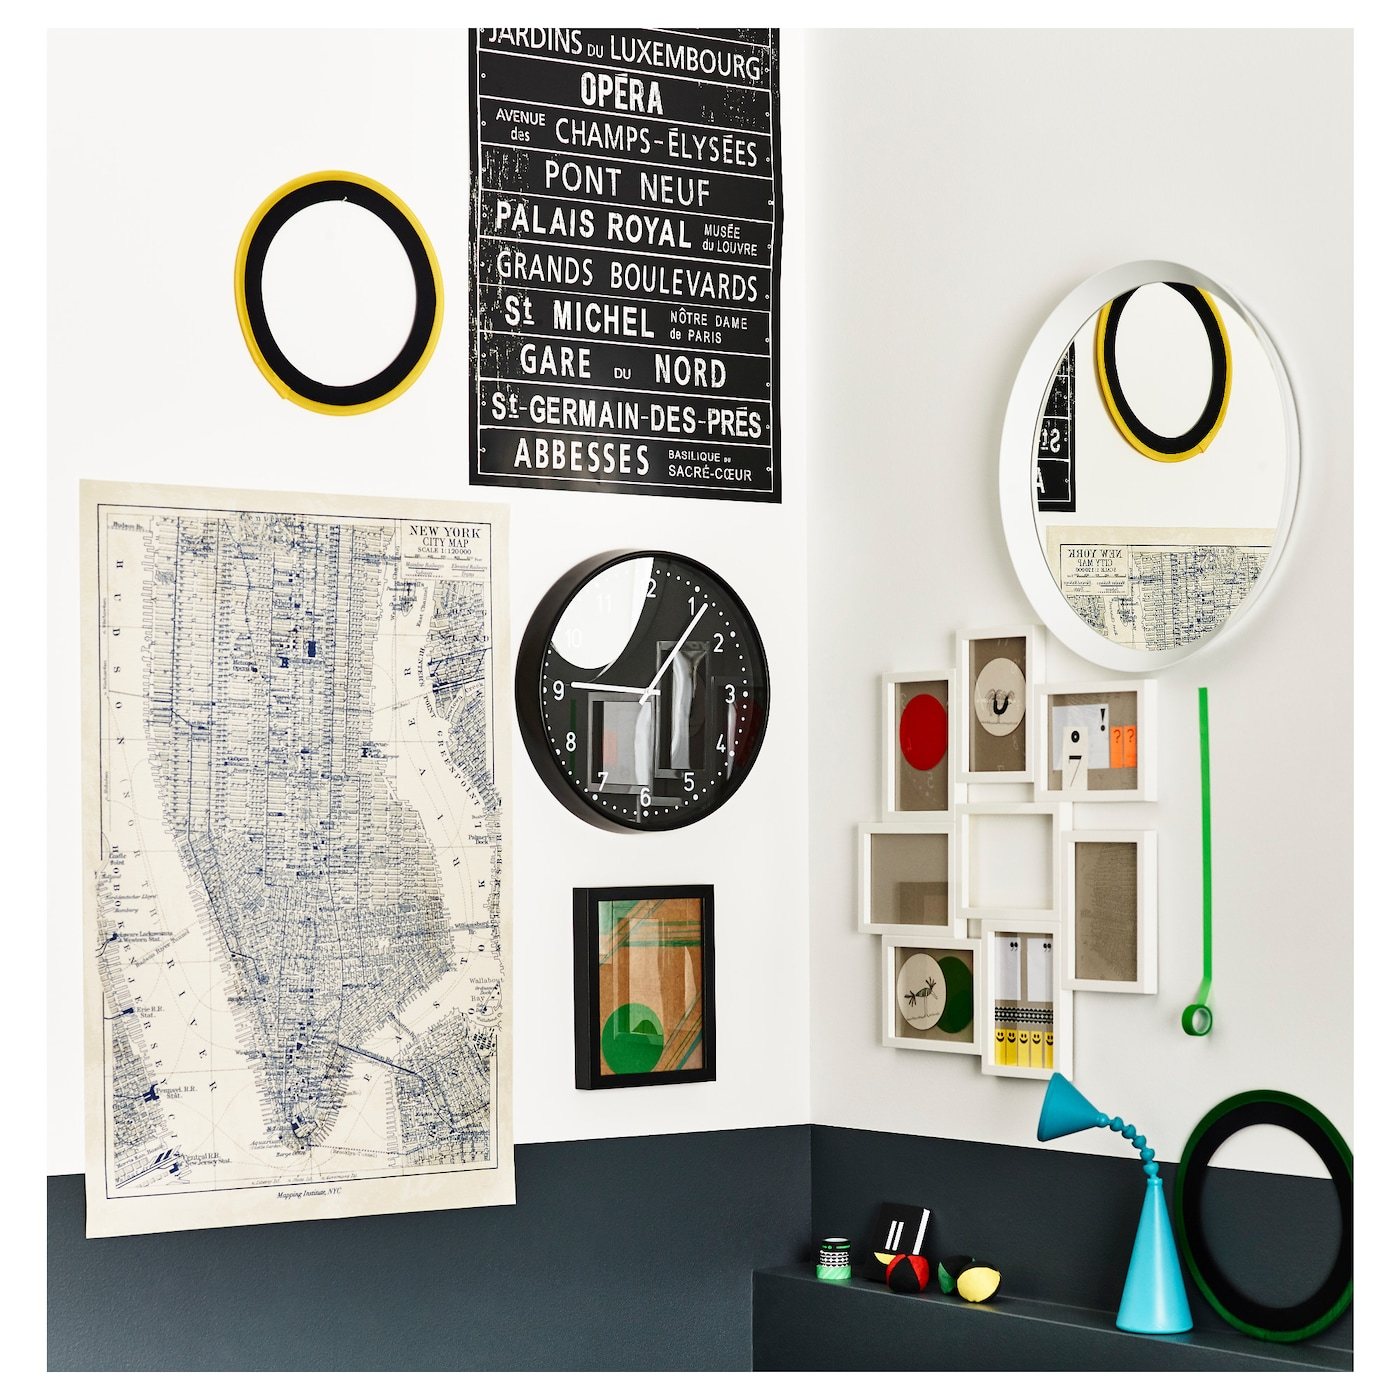 IKEA BILD poster You can personalise your home with artwork that expresses your style.